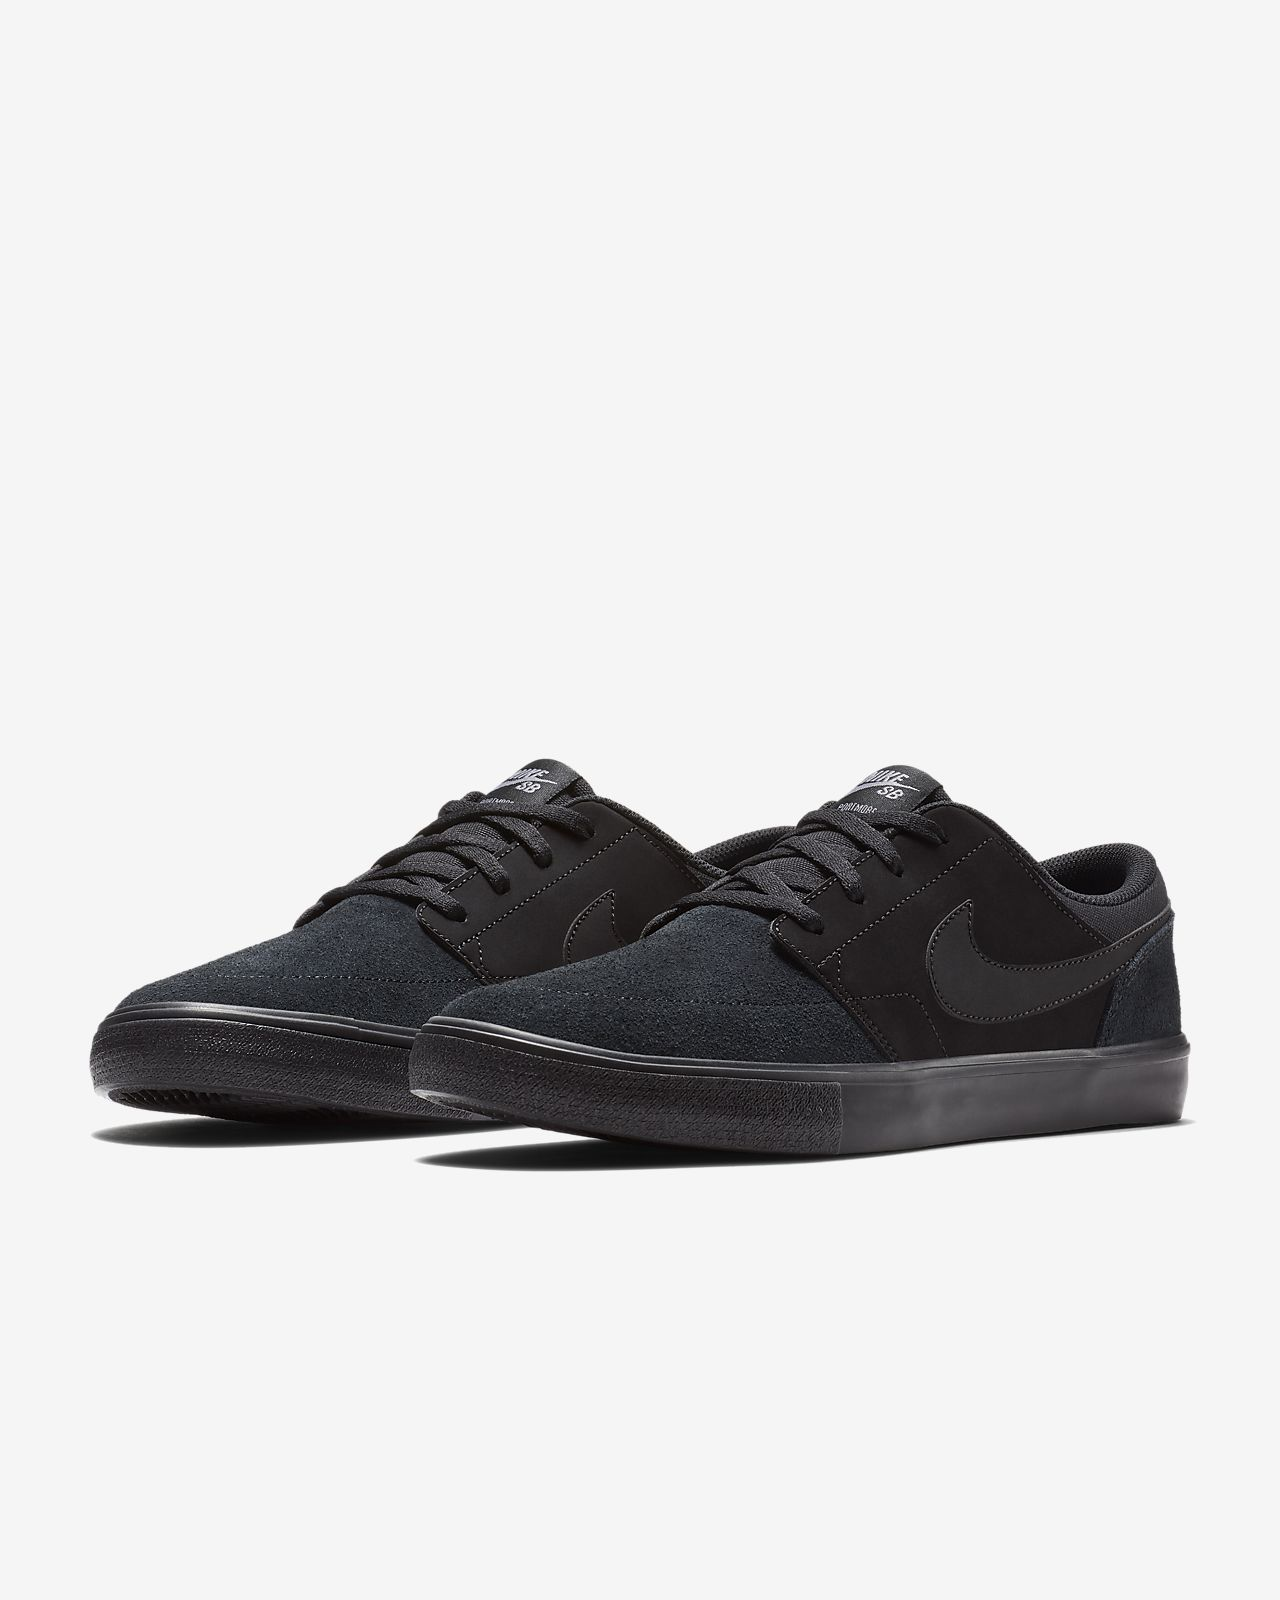 brand new cdf8f be60a ... Chaussure de skateboard Nike SB Solarsoft Portmore II pour Homme